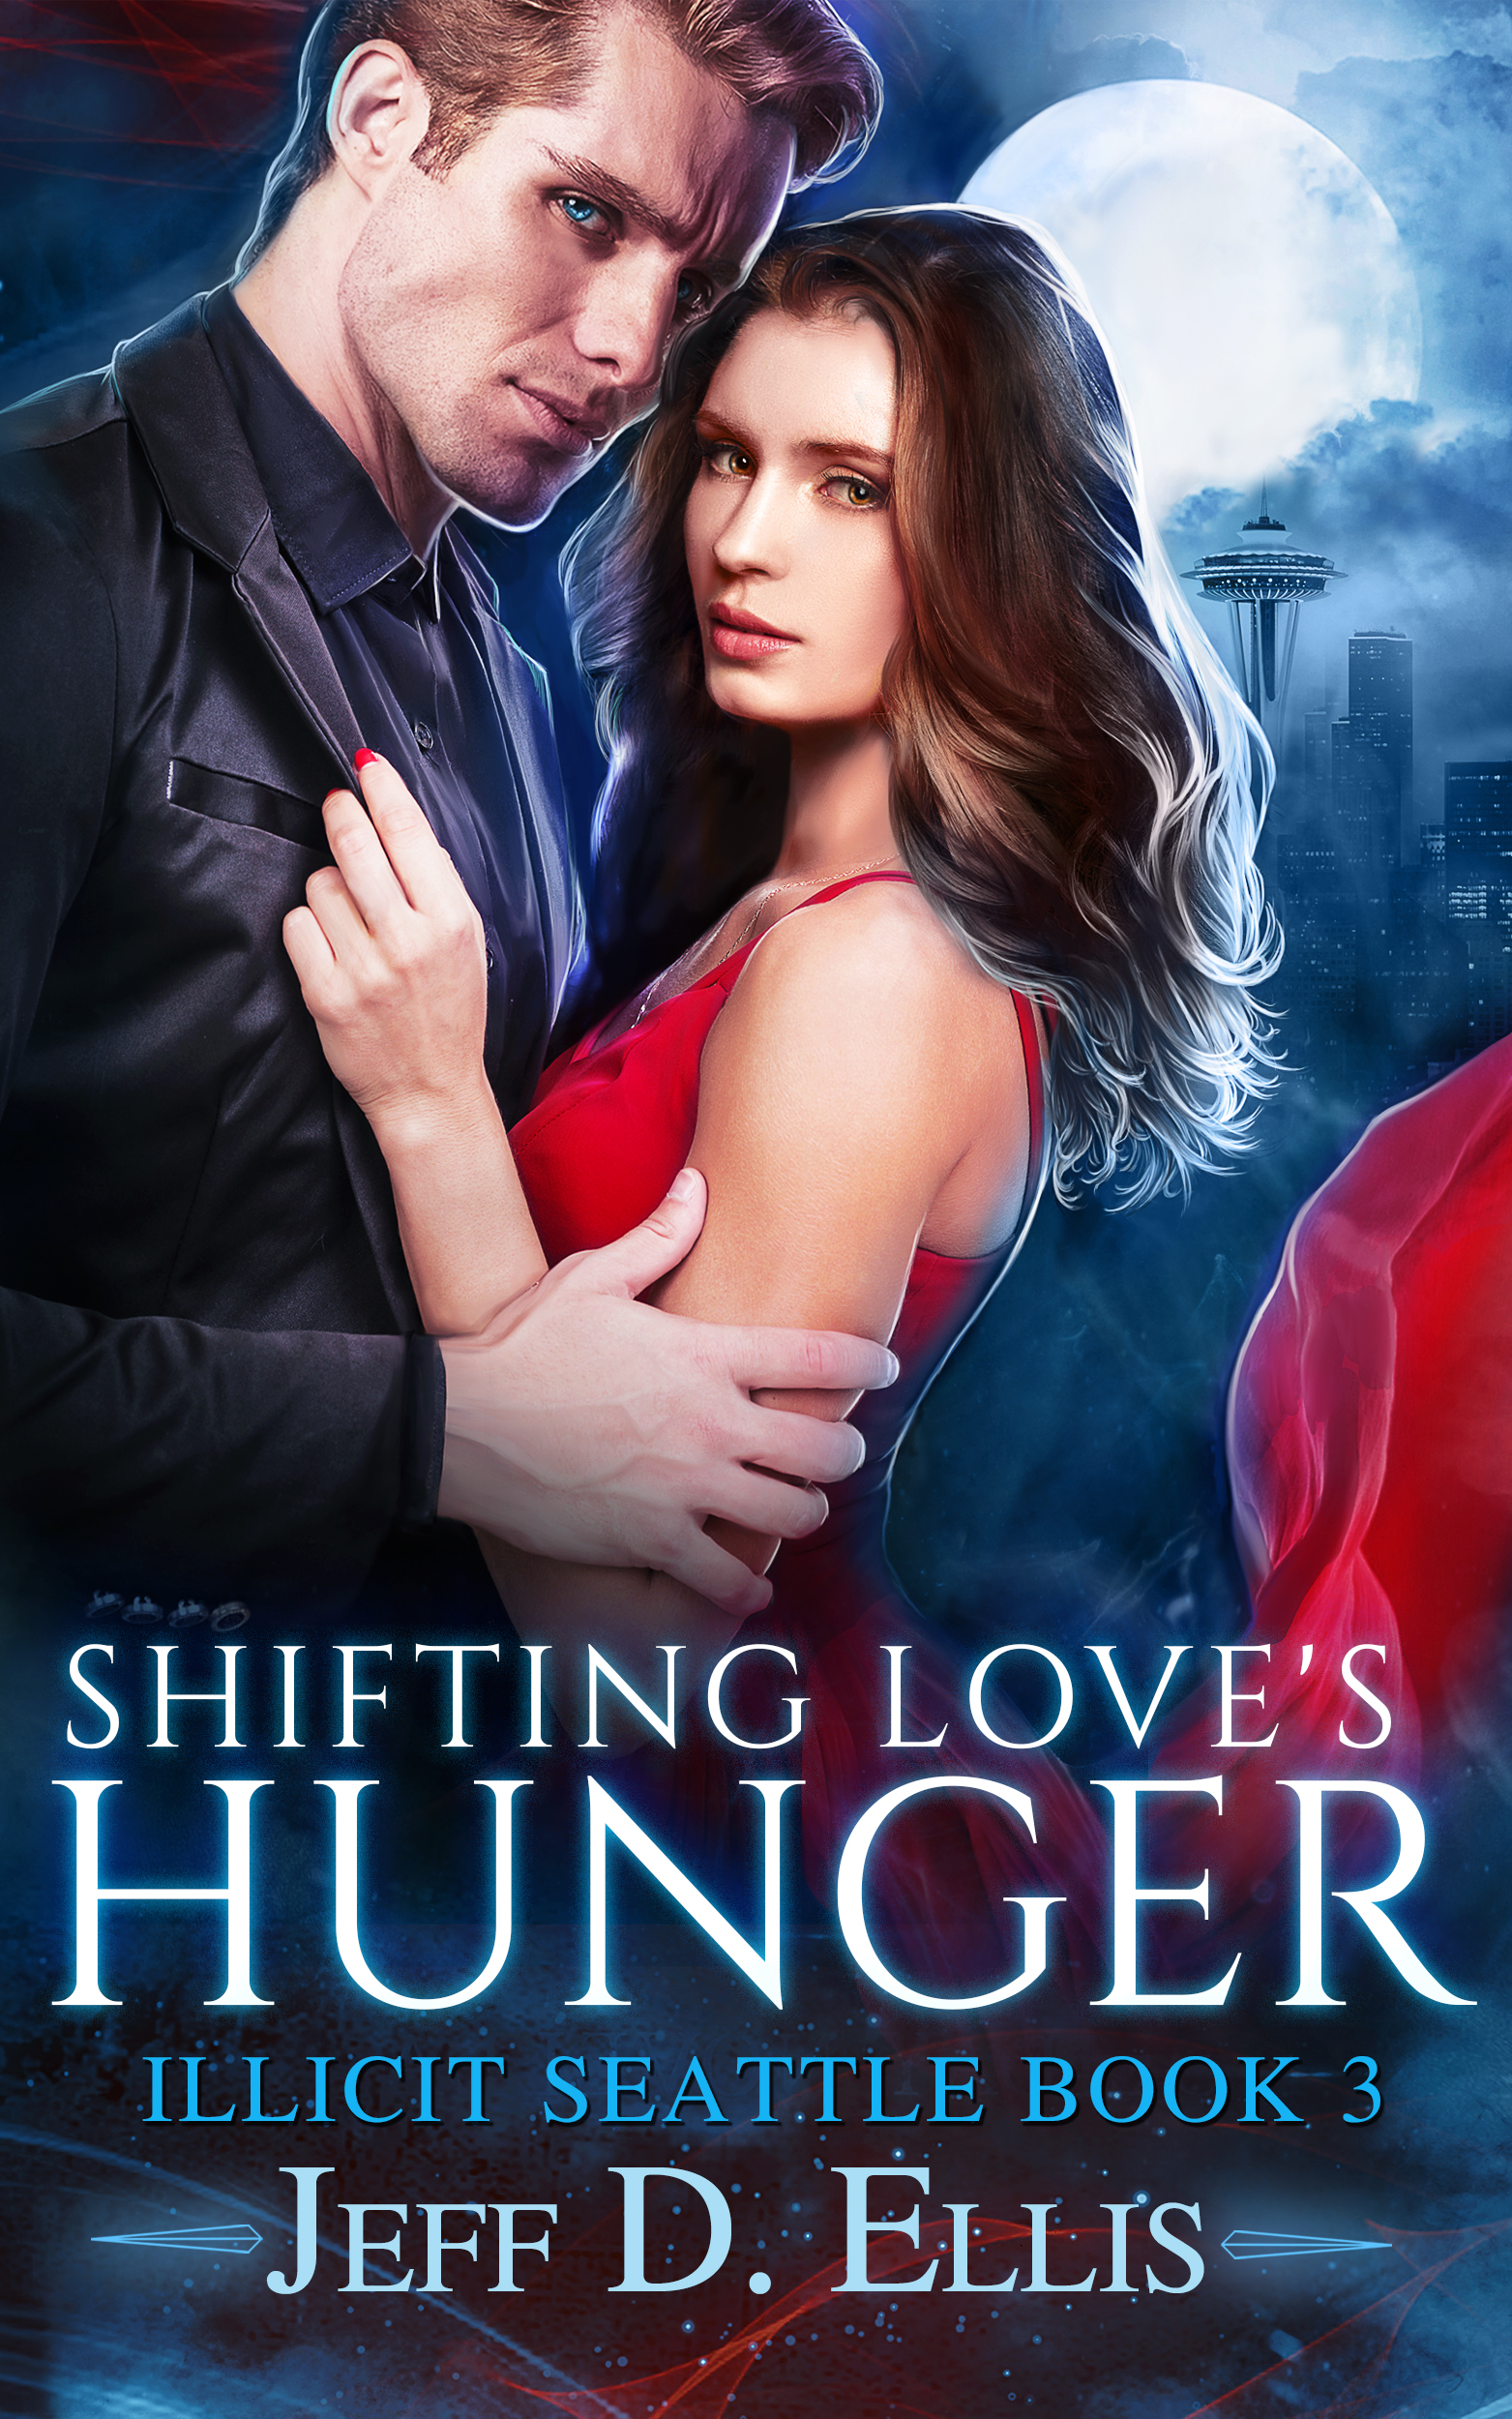 Shifting Love's Hunger